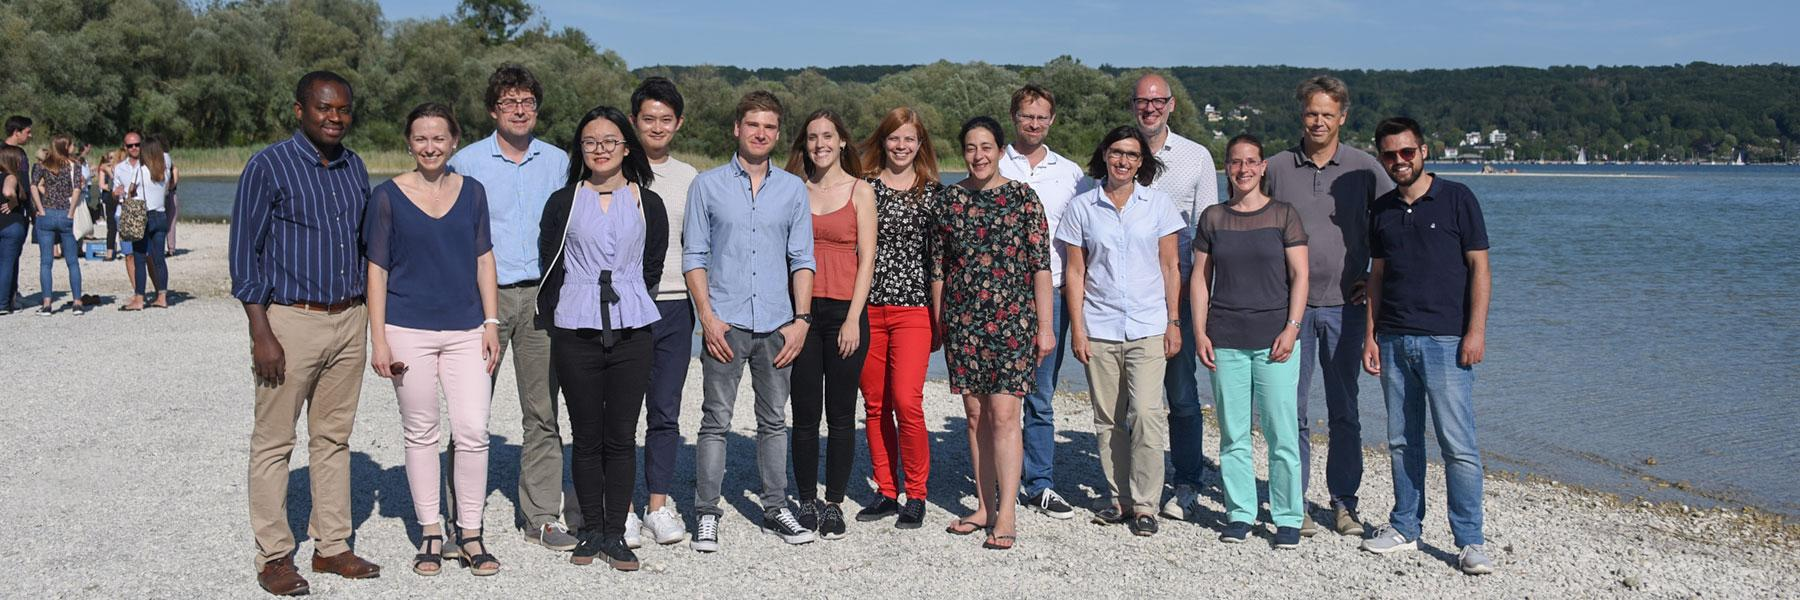 Dichgans Research Group